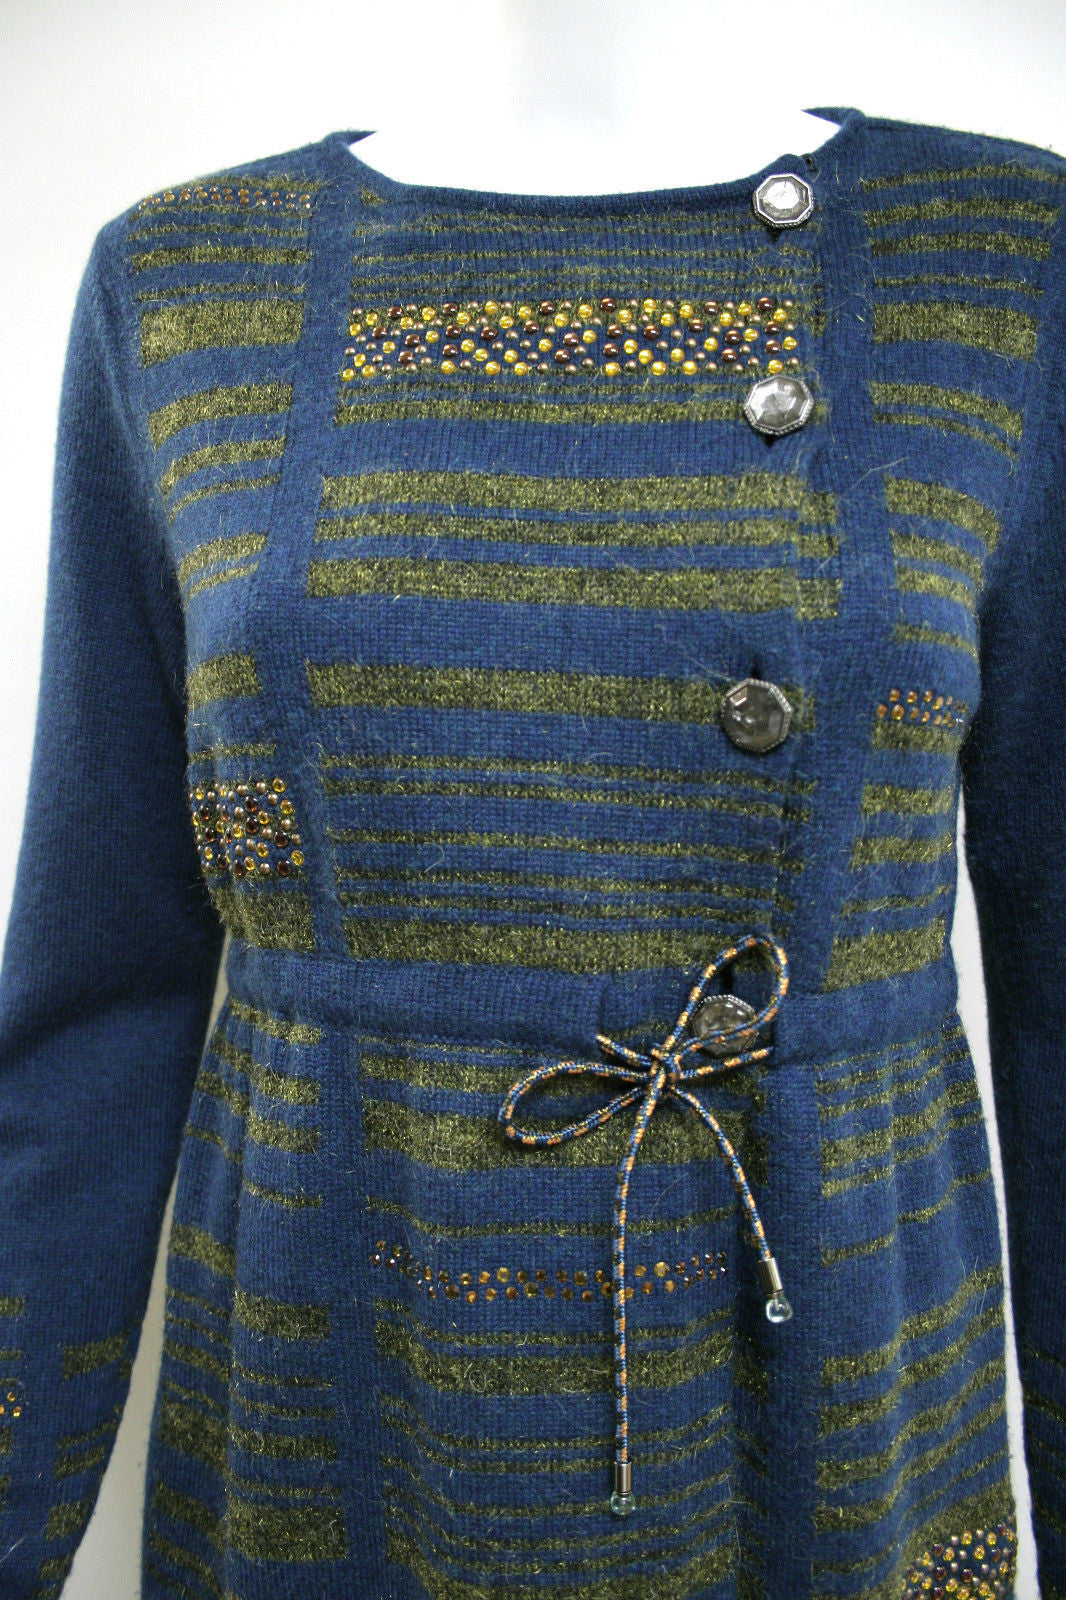 bisbiz.com CHANEL  Teal/Moss-Green Cashmere-Blend  Jeweled Sweater Coat  Size: FR 36 / US4-6 - Bis Luxury Resale